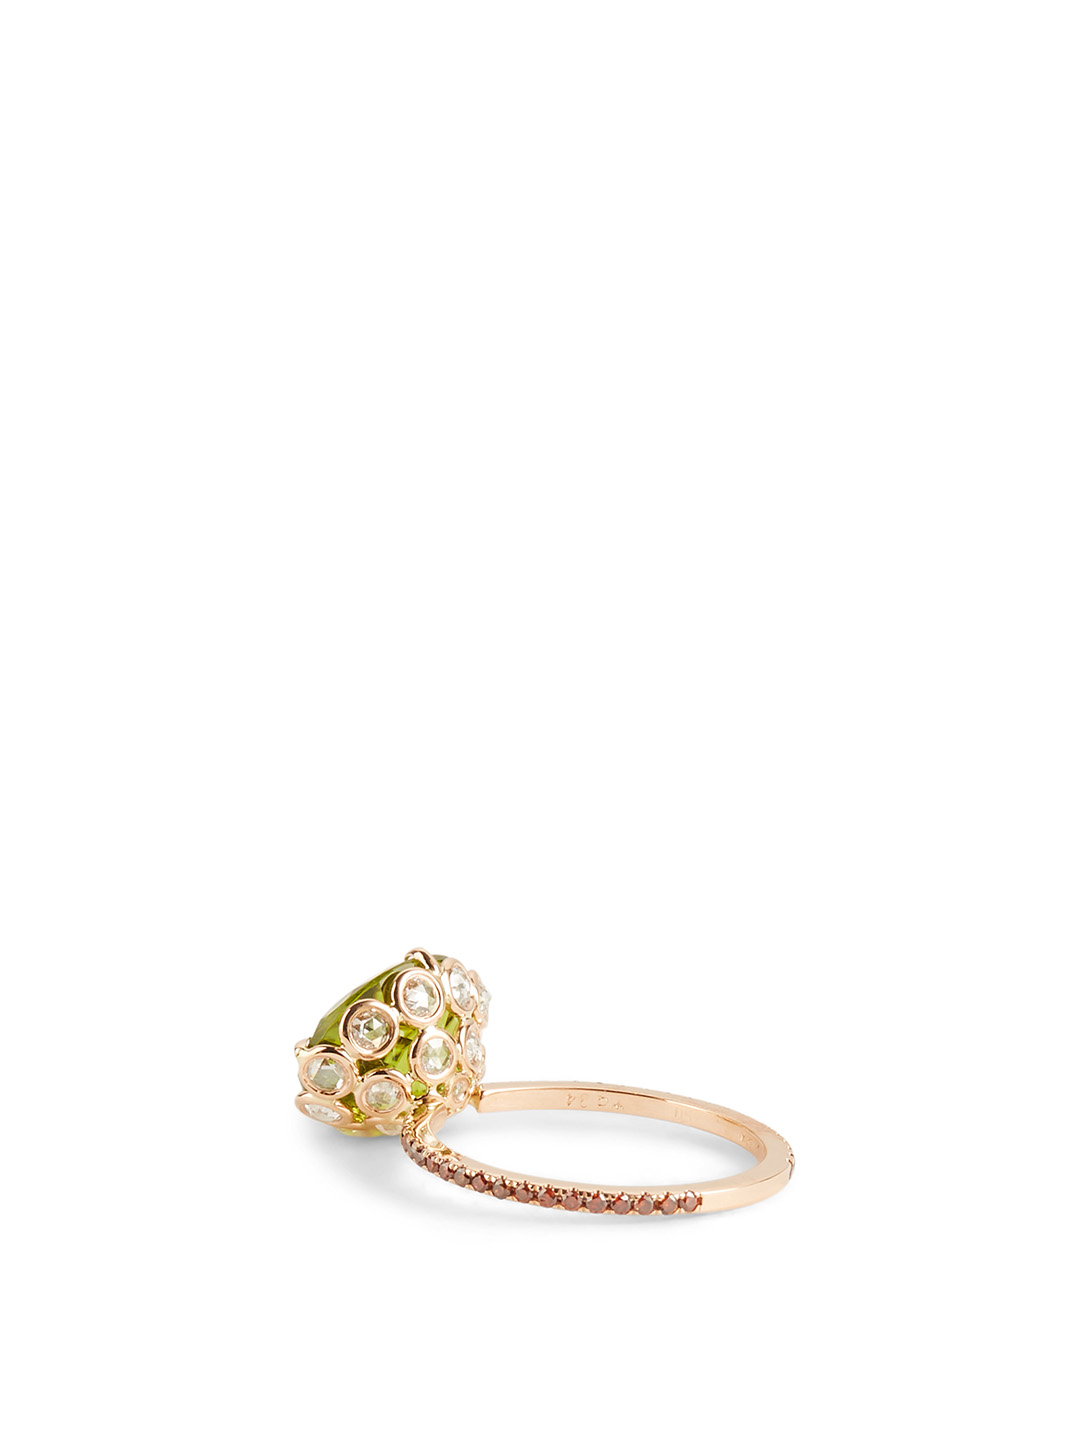 LITO 18K Rose Gold Ring With Peridot And Diamonds Women's Metallic